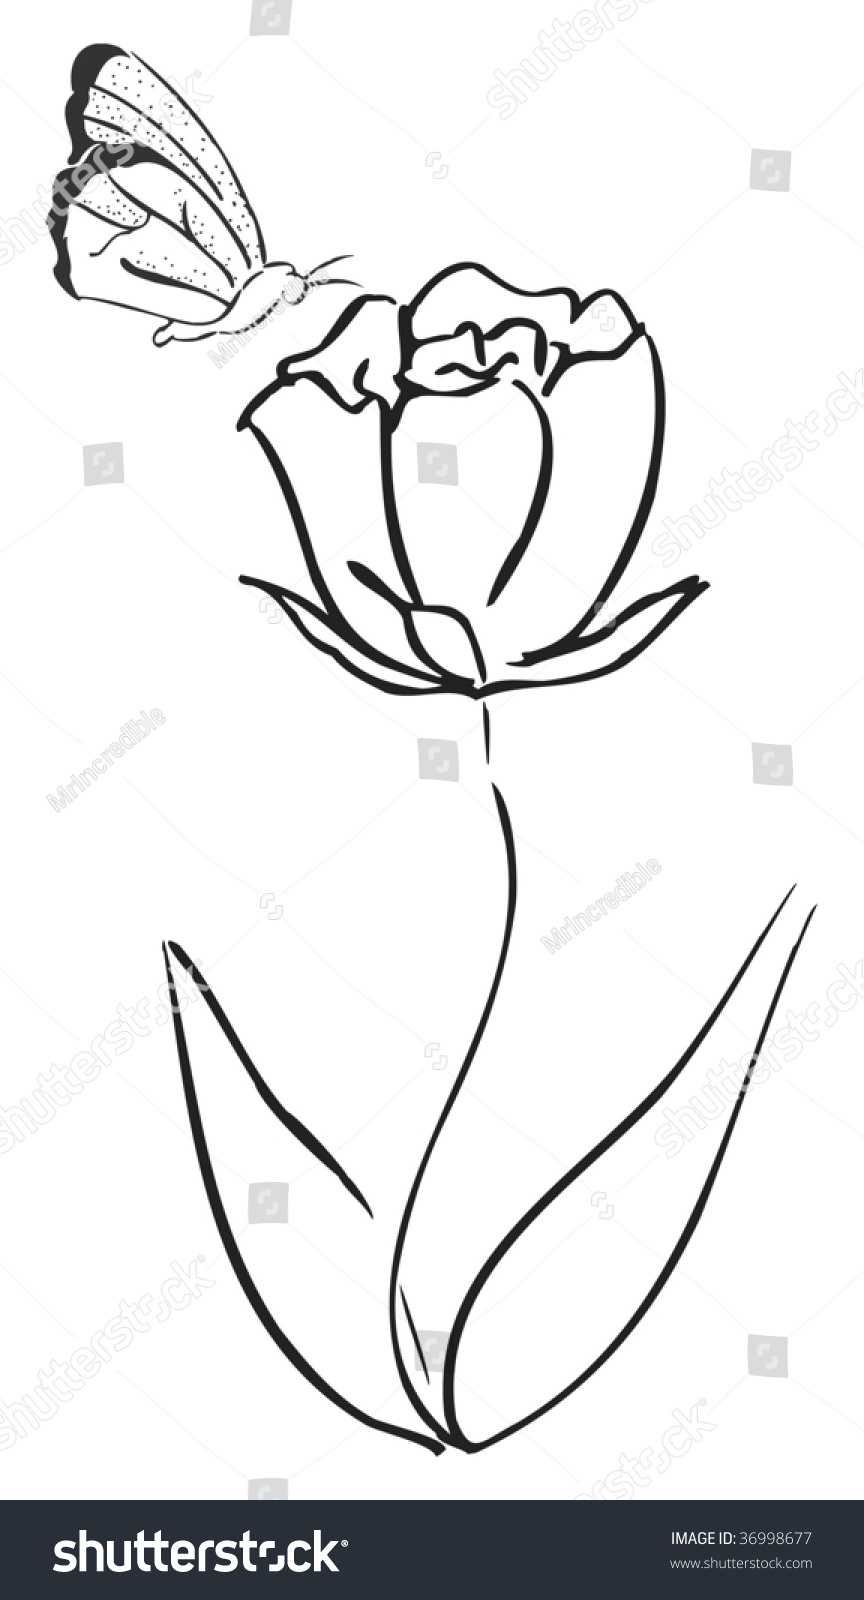 Vector Drawing Lines App : Line drawing butterfly flower stock vector